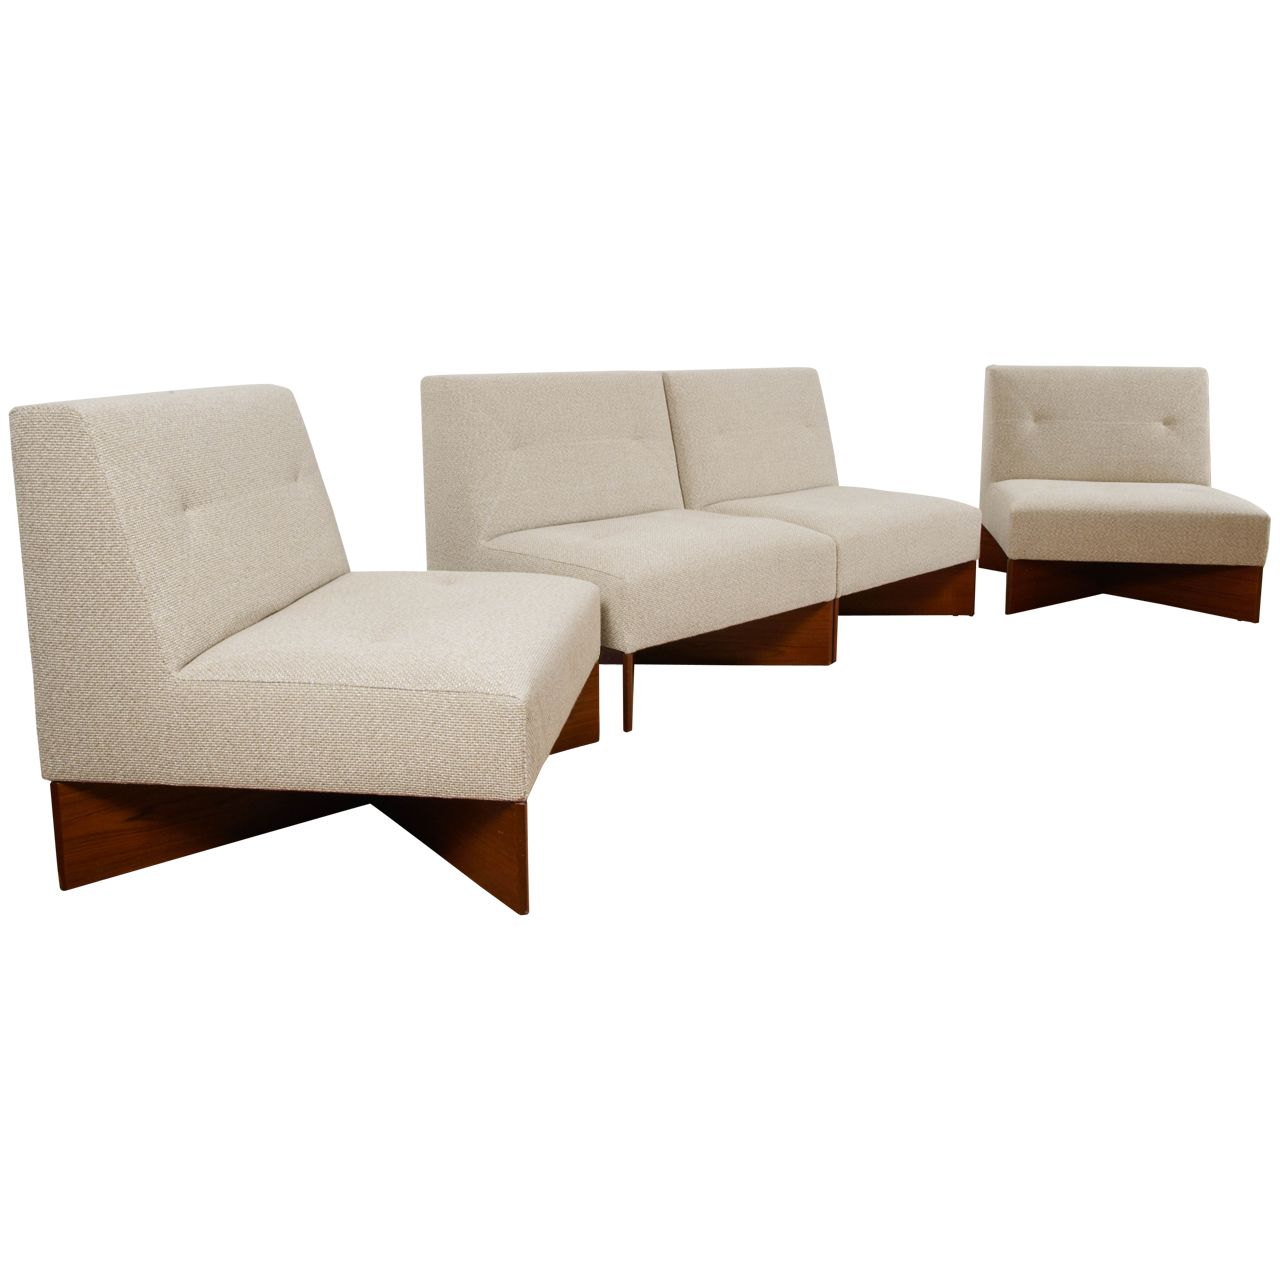 Mostly Sofas Ligne Roset Sofa Bed Heals Set Of 4 Chairs Capitole Pierre Guariche Edition